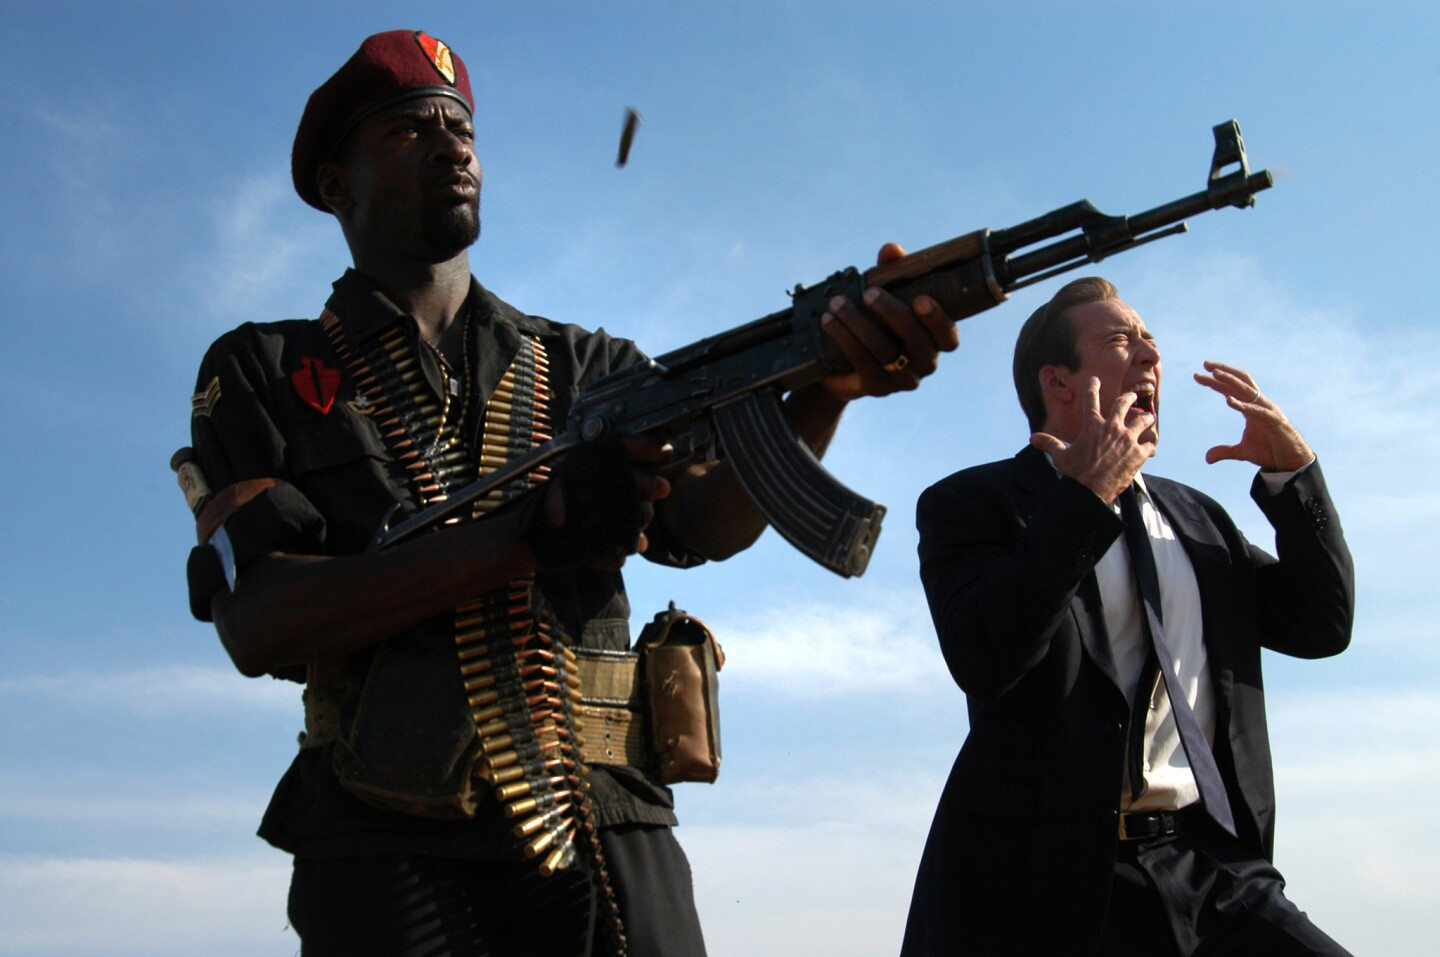 """Yuri Urlov (Nicolas Cage), right, in the movie """"Lord of War."""" The film was produced by Christopher Eberts in 2005."""